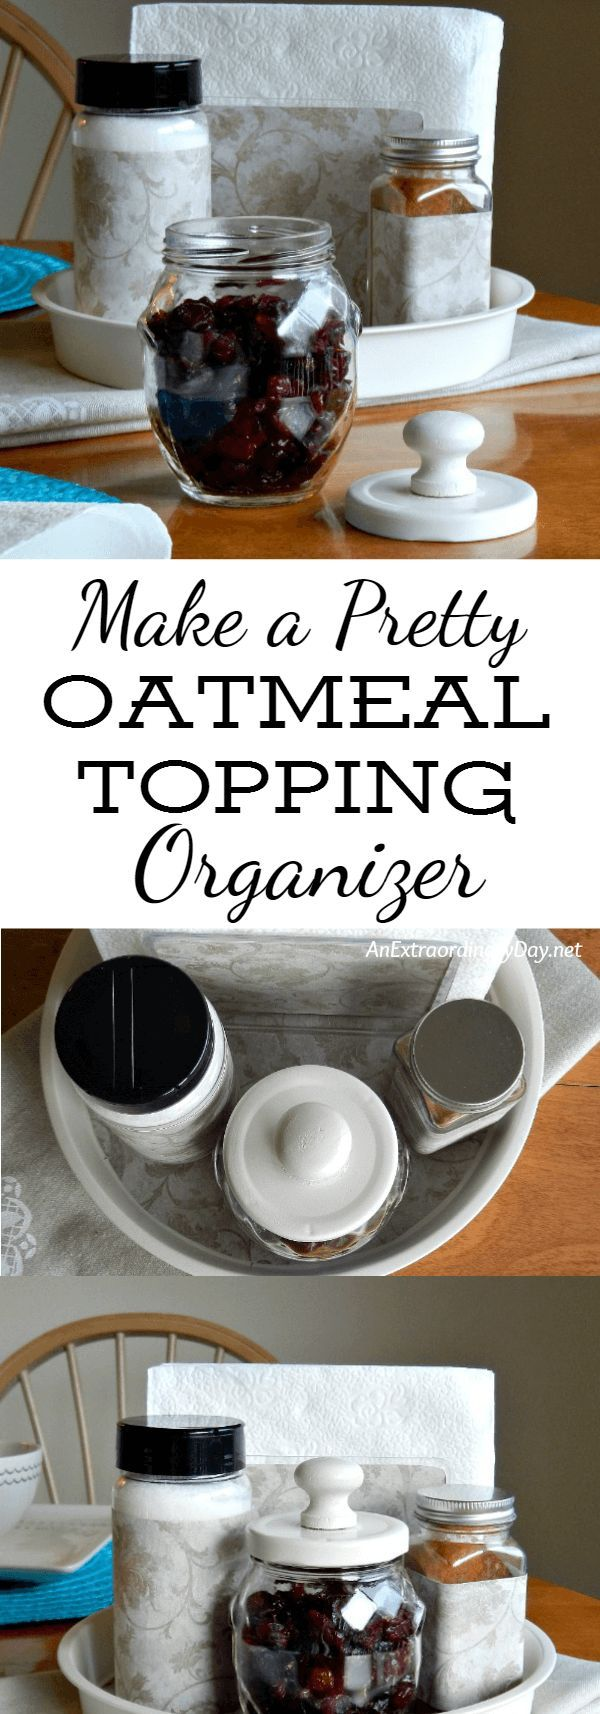 How To Make A Pretty Oatmeal Topping Organizer For Your Breakfast Table |  Oatmeal Toppings, Upcycle And Creative